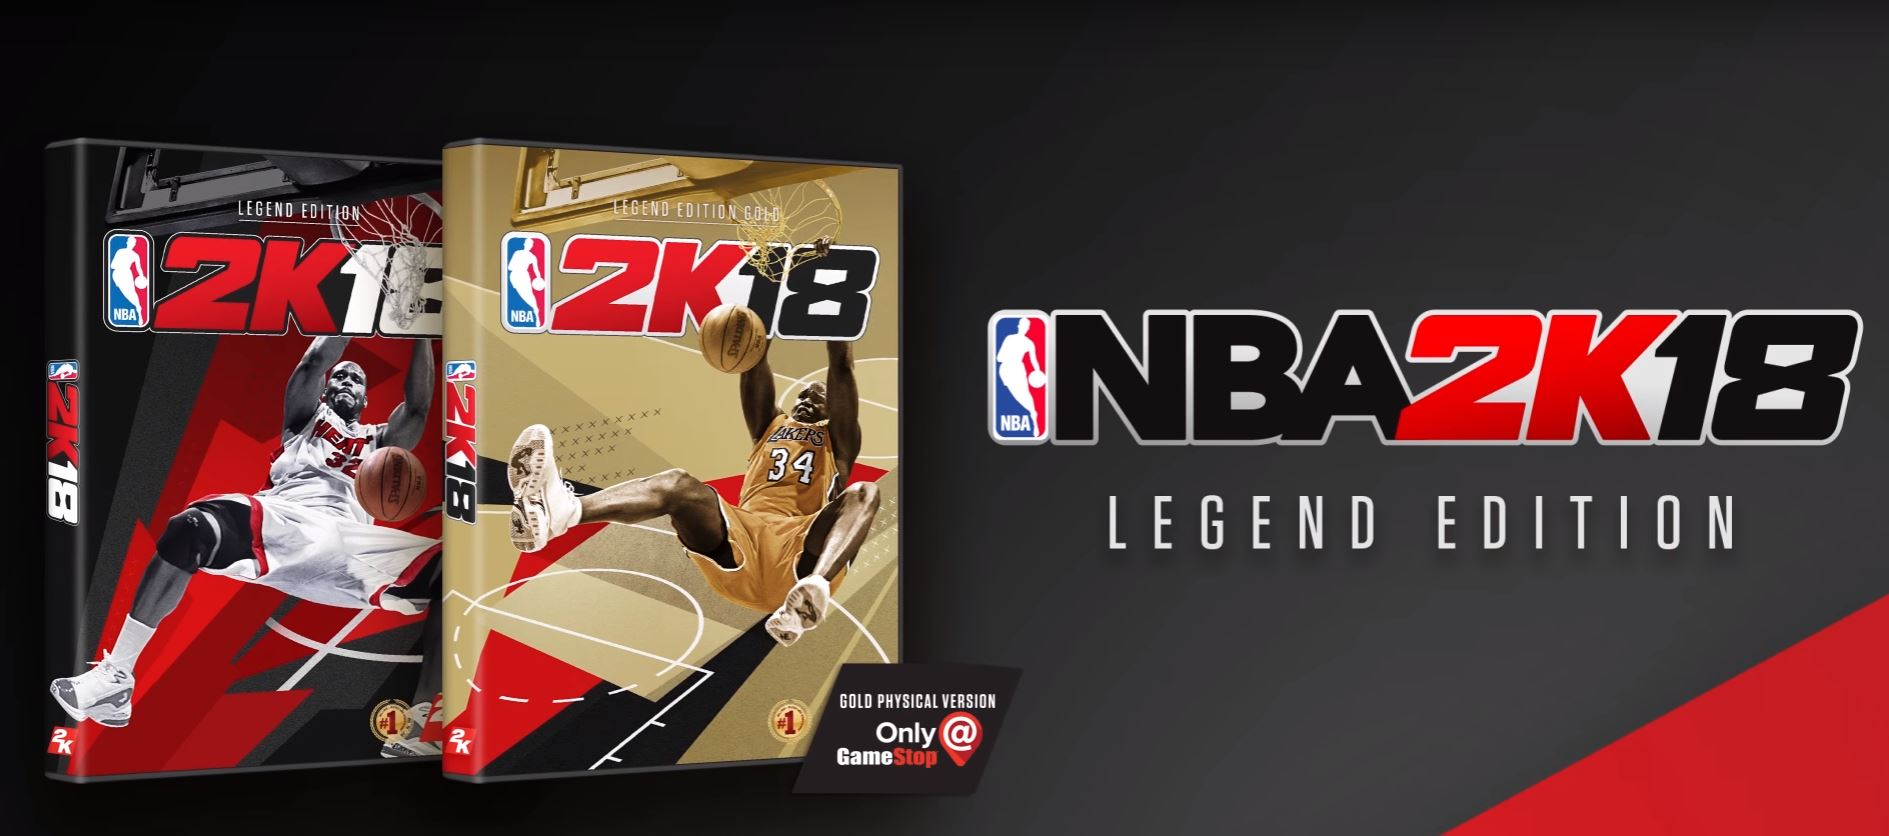 Photo of NBA 2K18 Legend Edition Reveal Trailer, Pre-order Available!